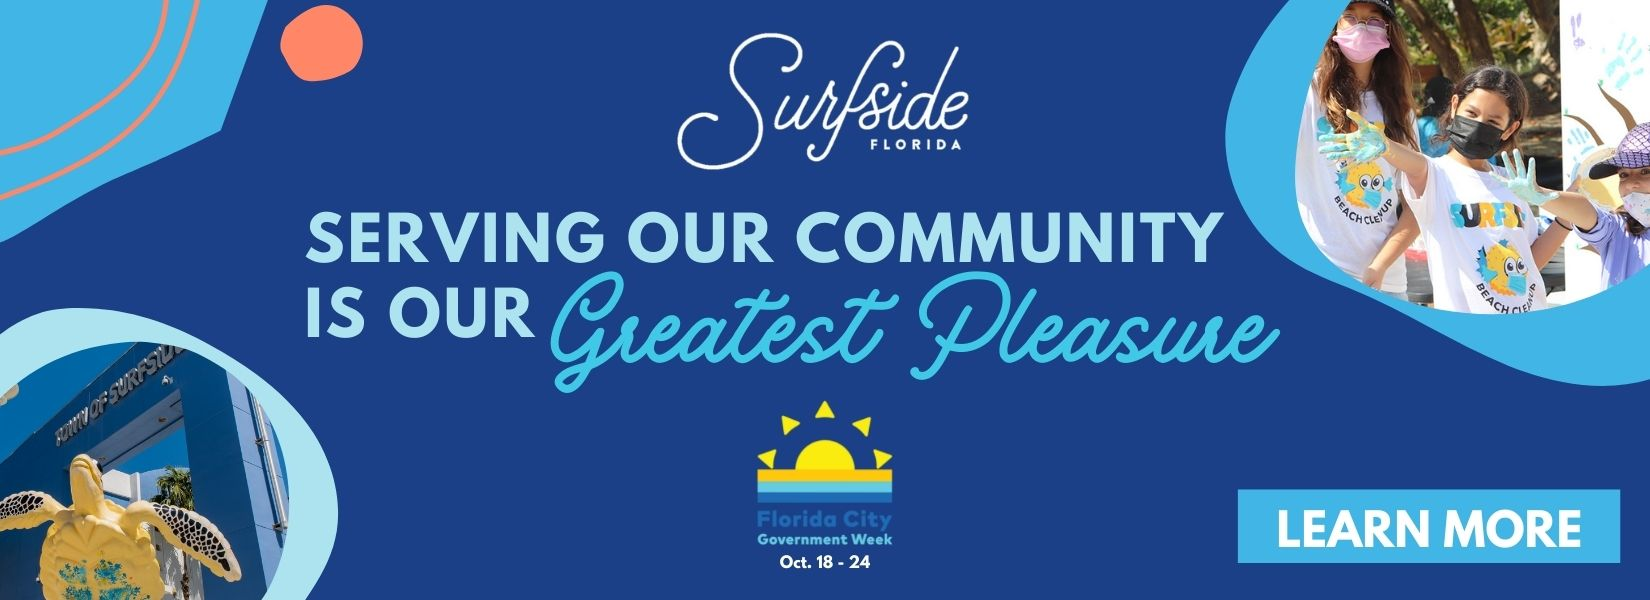 surfside city government week